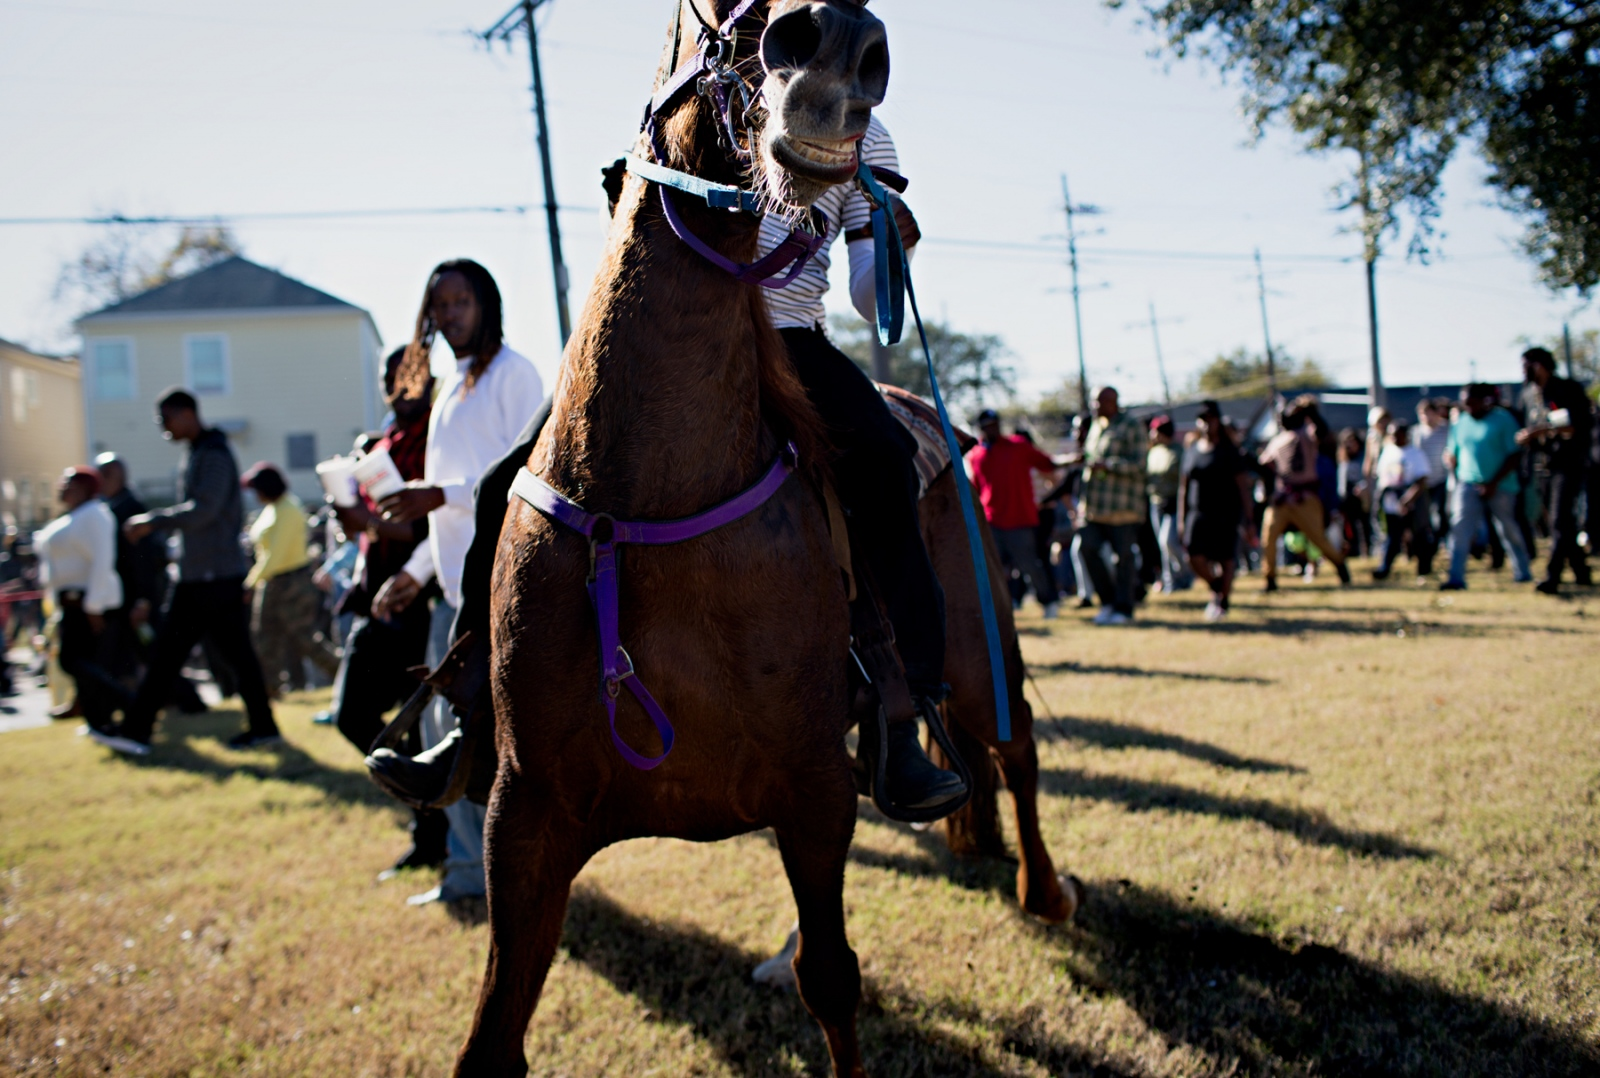 Windle rides thirteen year old horse named Lady along the parade. There are several horse clubs that join and ride along side the parade.